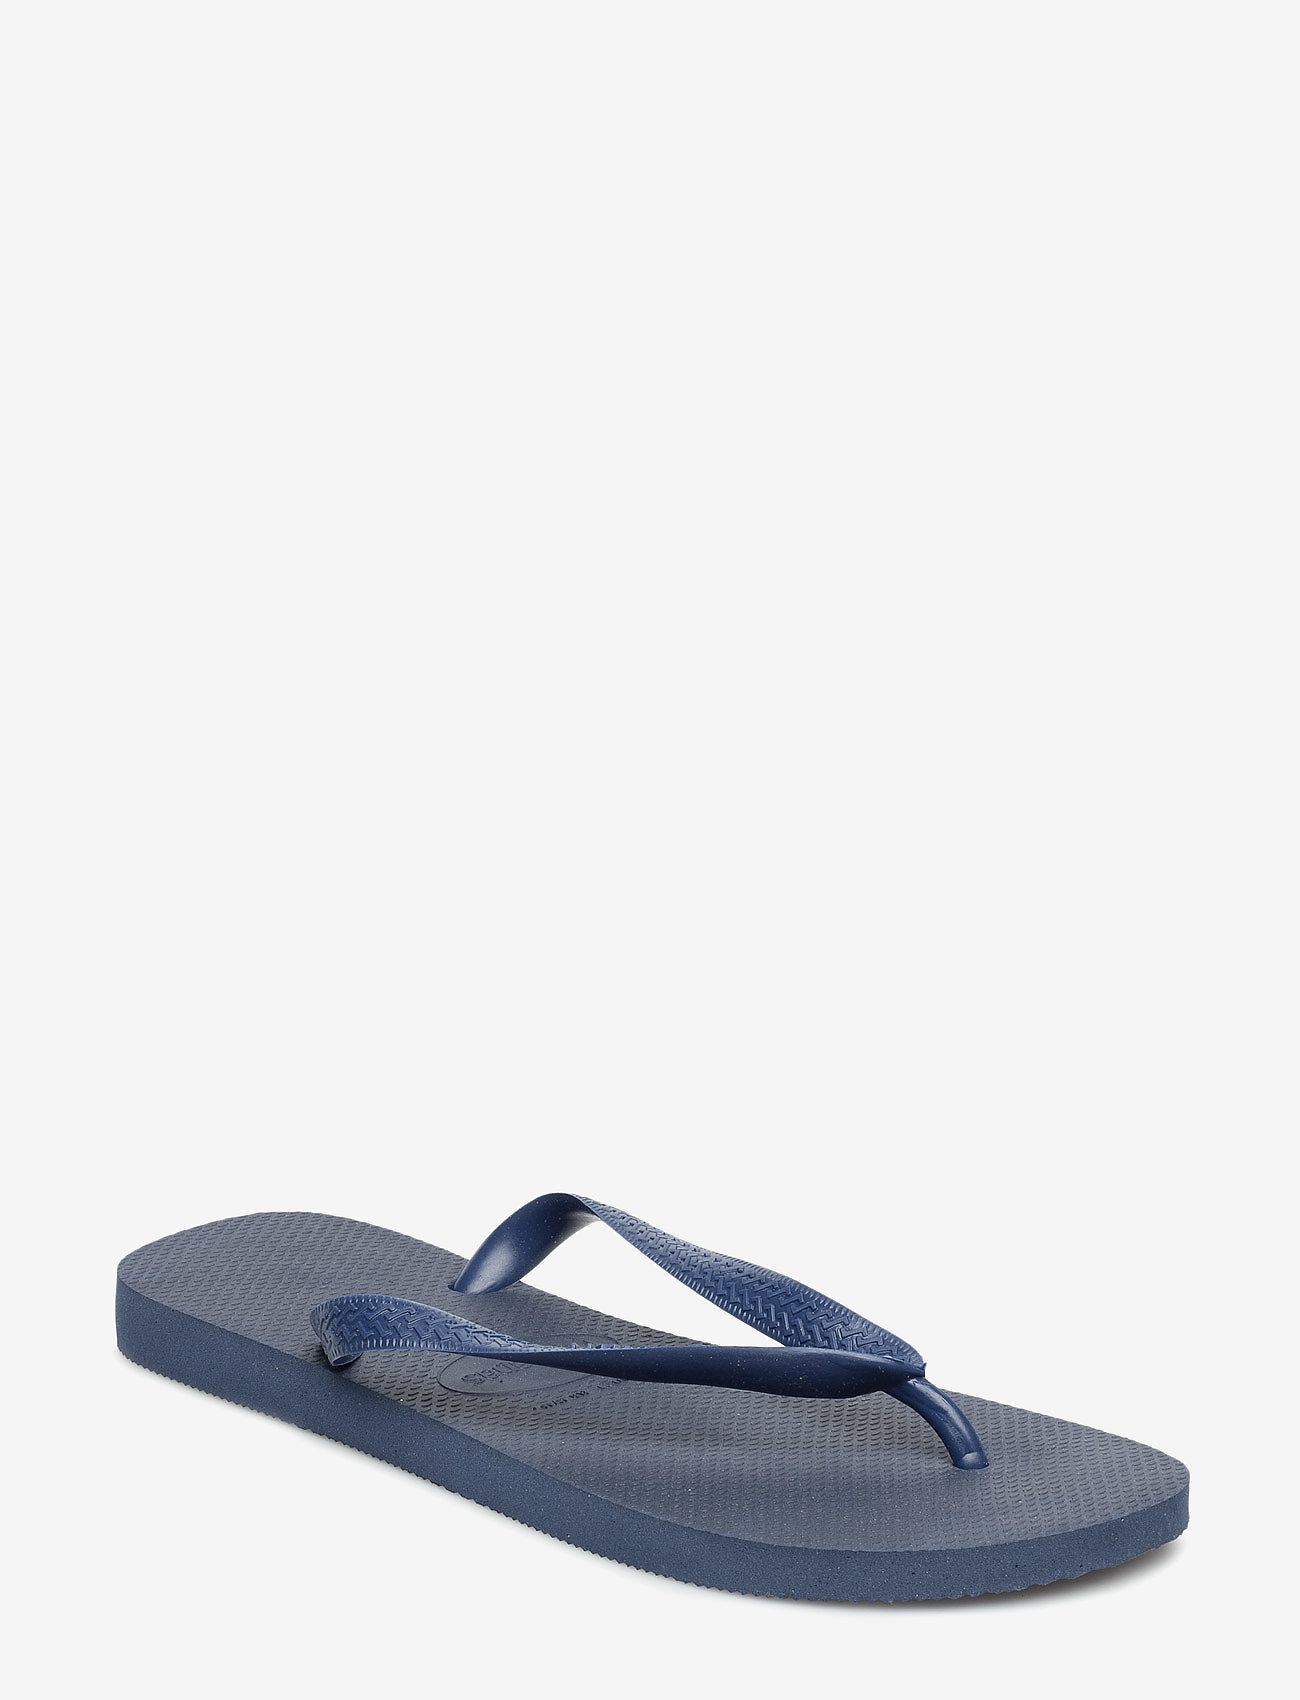 Havaianas - Top - teen slippers - navy blue - 0